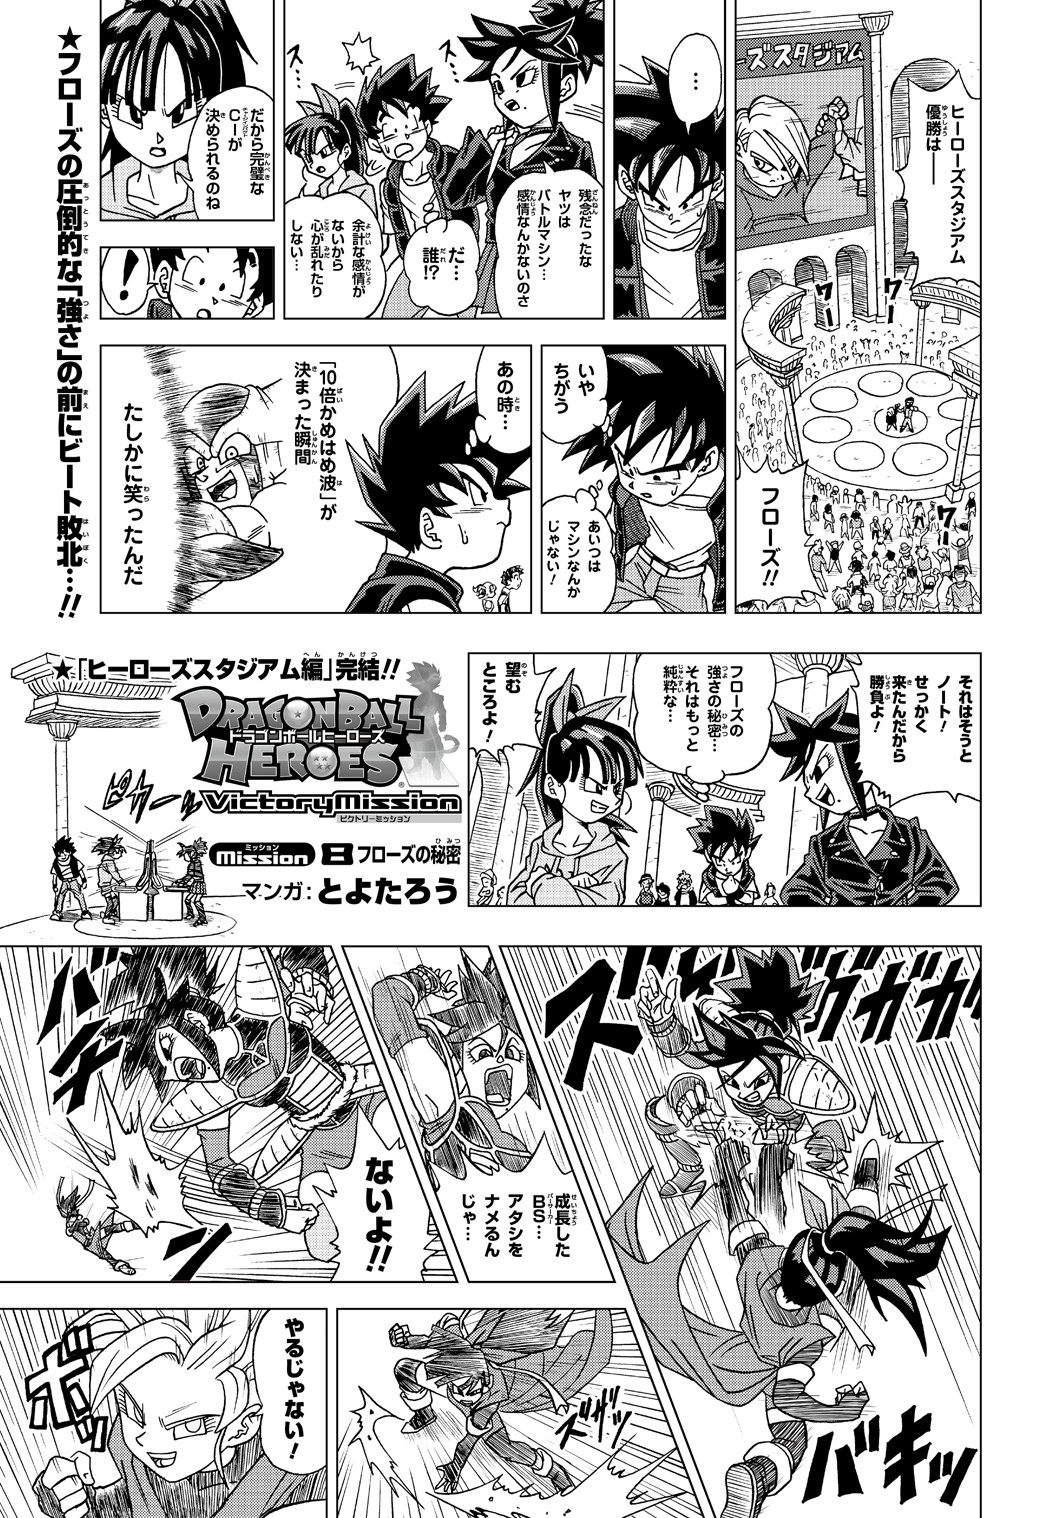 Dragon Ball Heroes Victory Mission Chapitre 008